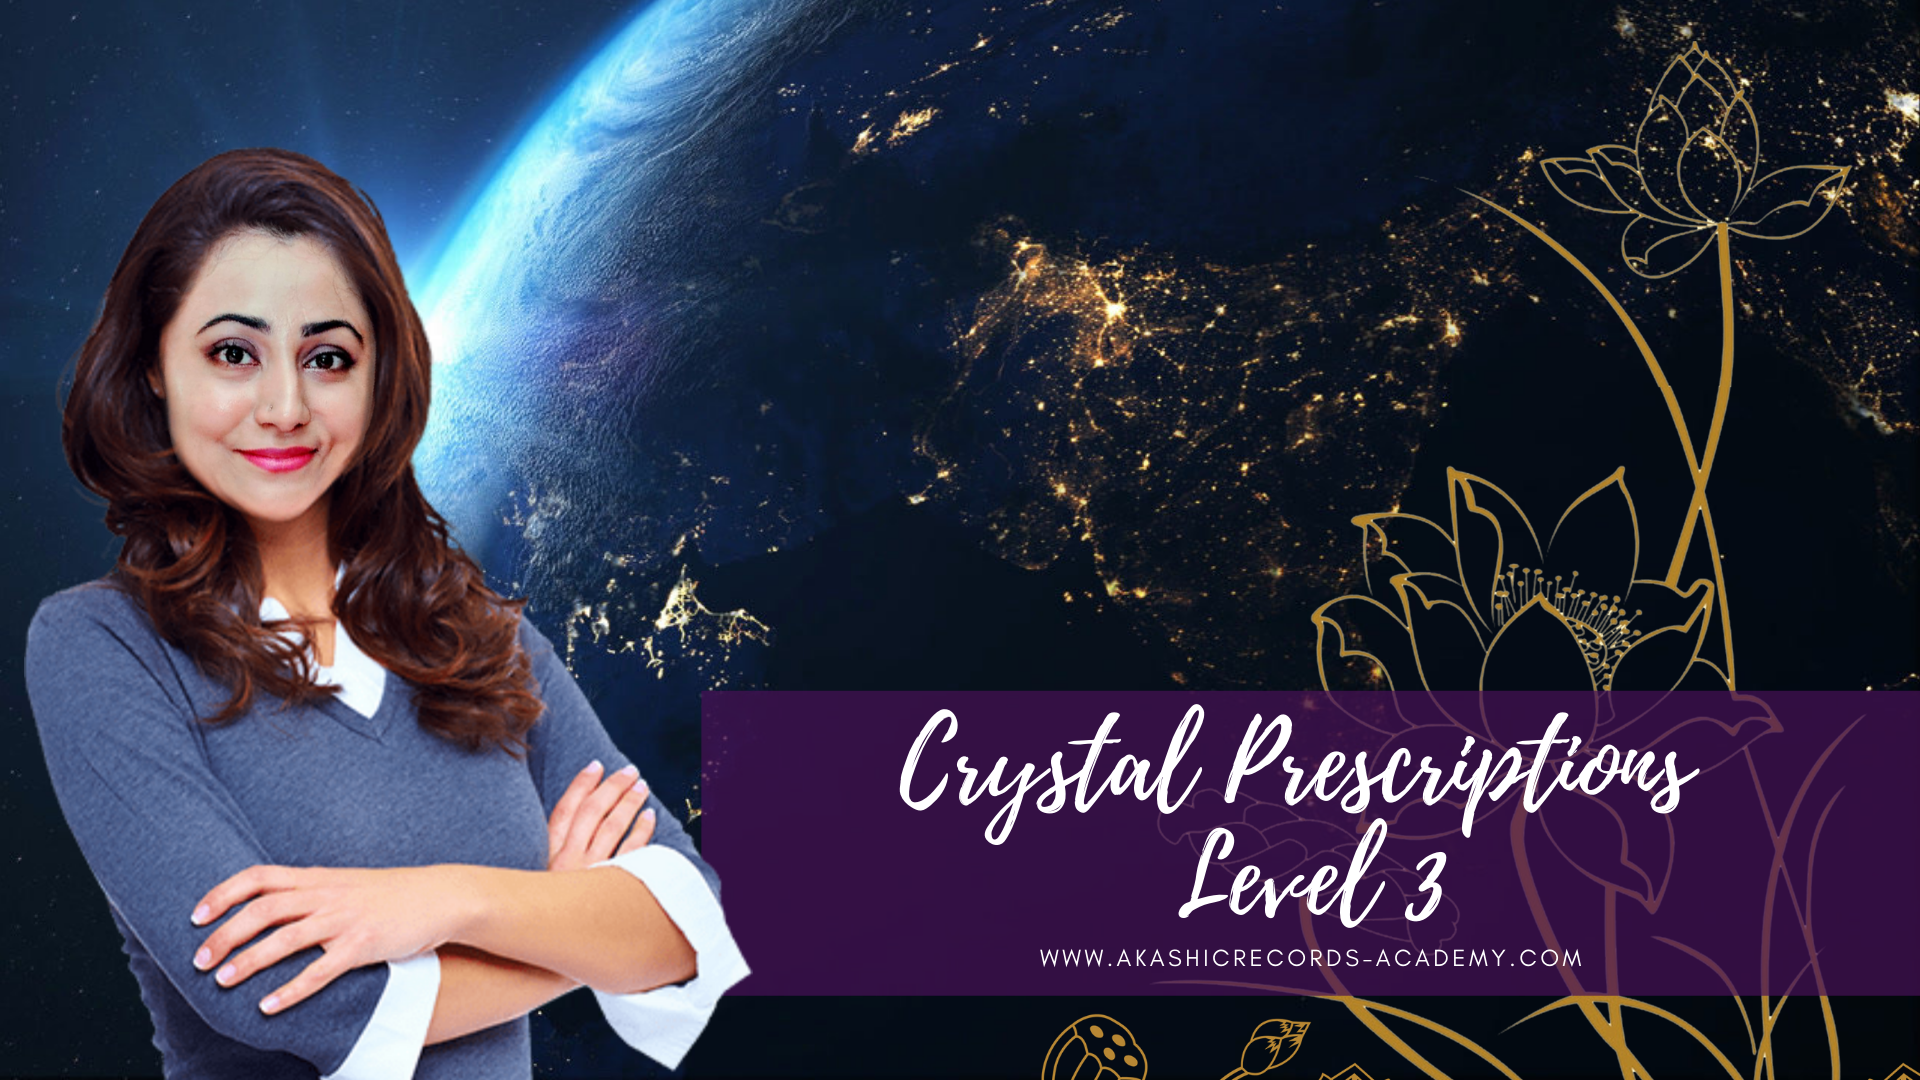 Crystal Prescription Expert Level 3